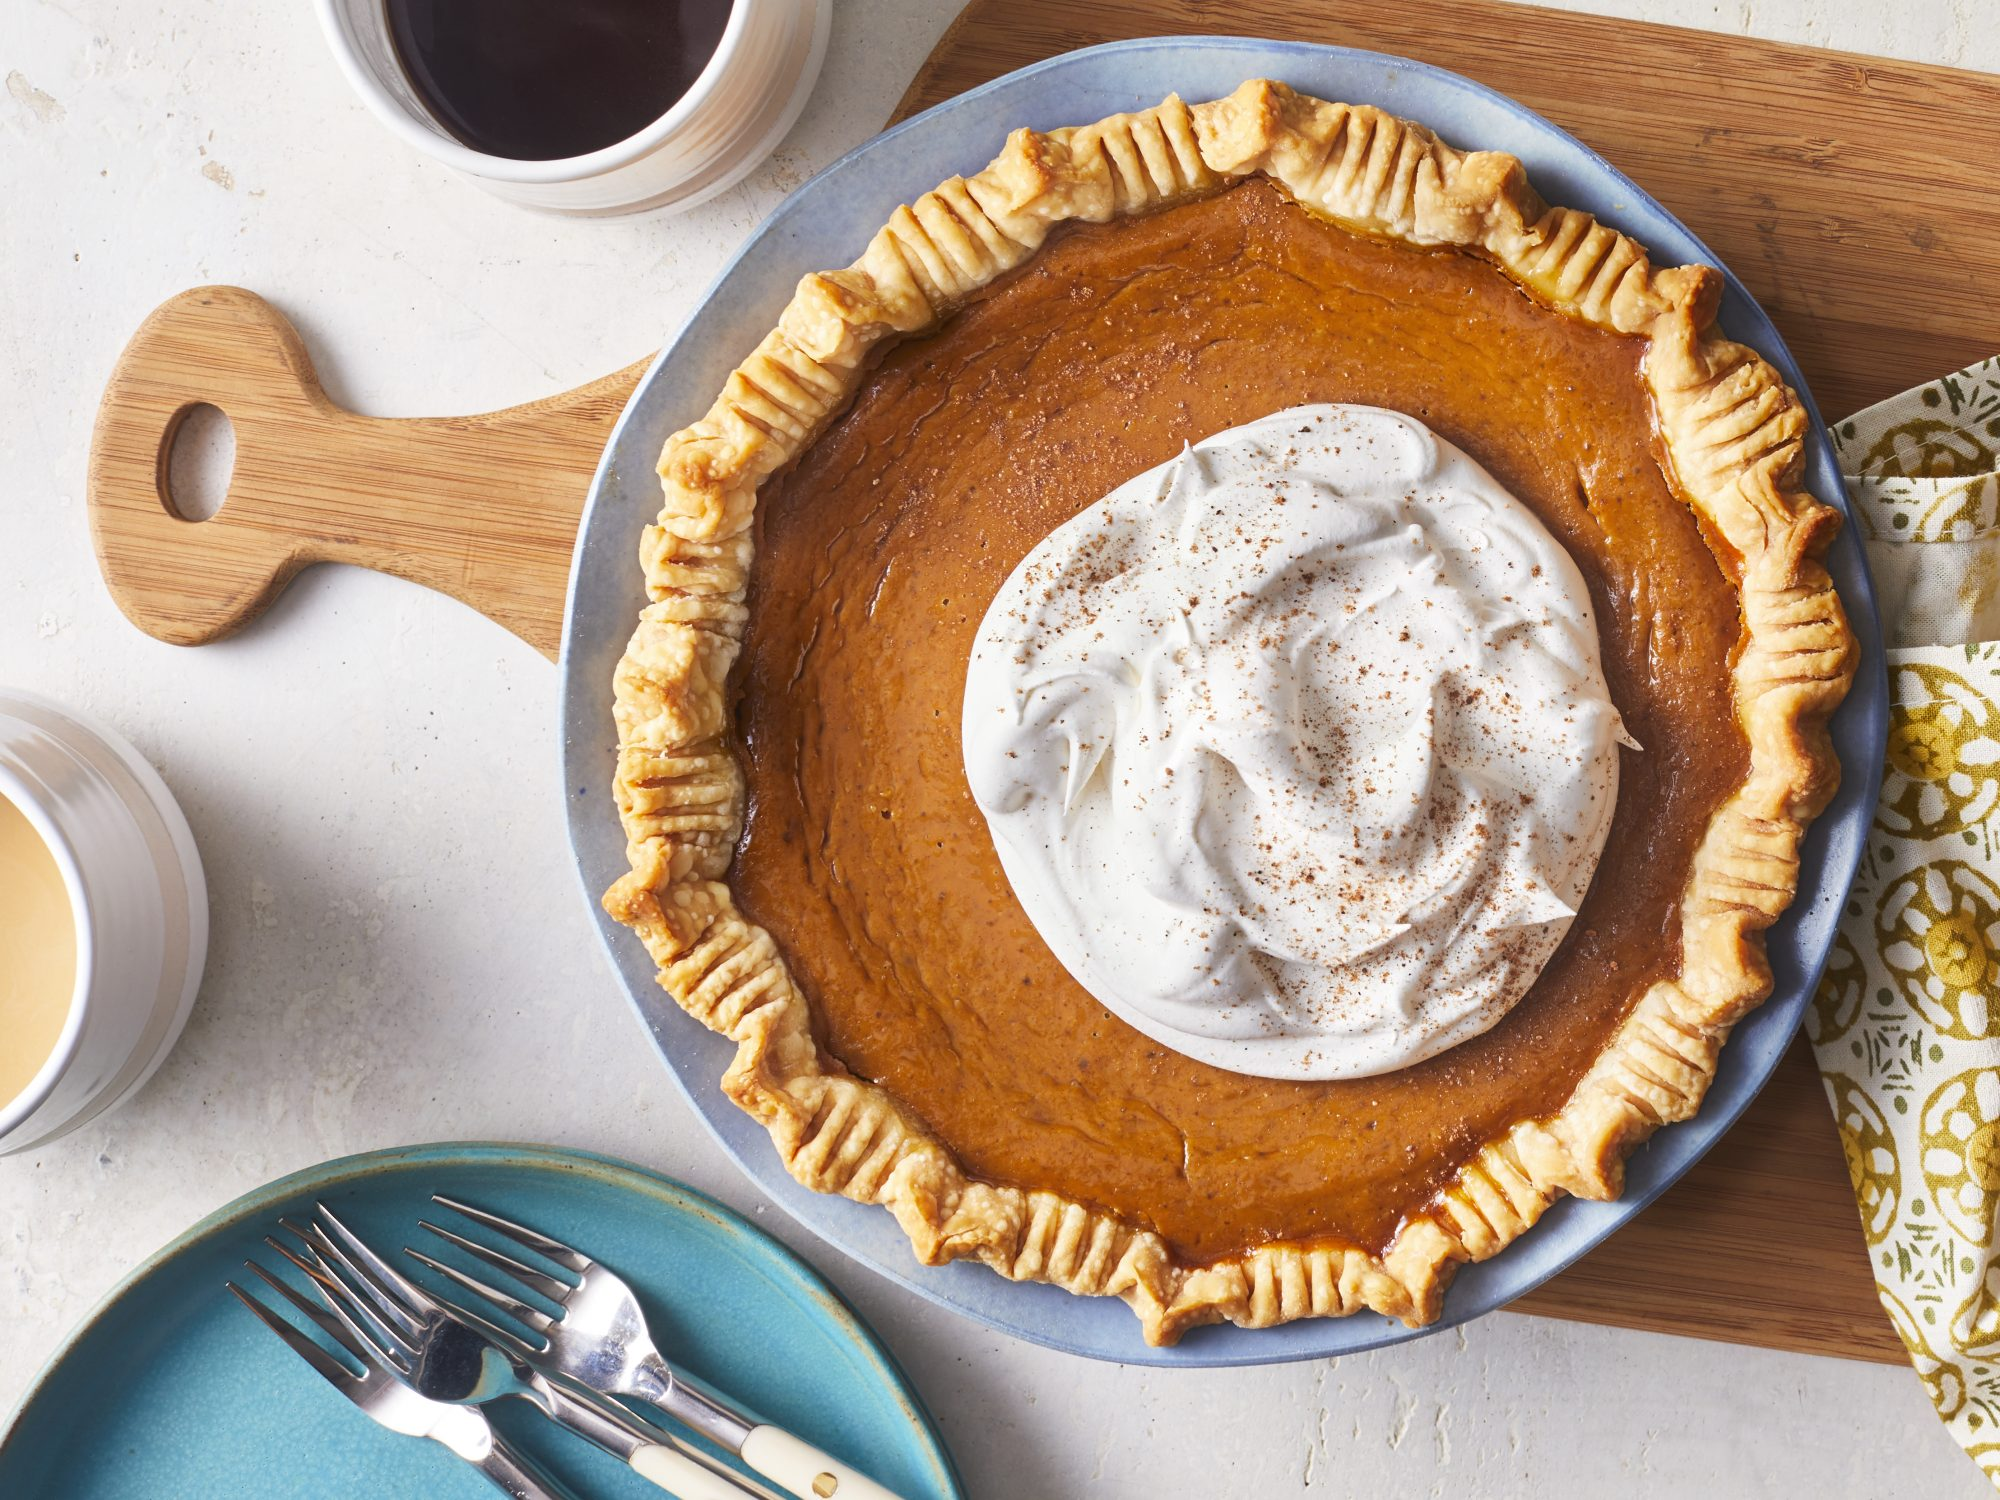 10 Pumpkin Pie Recipes That You'll Fall For